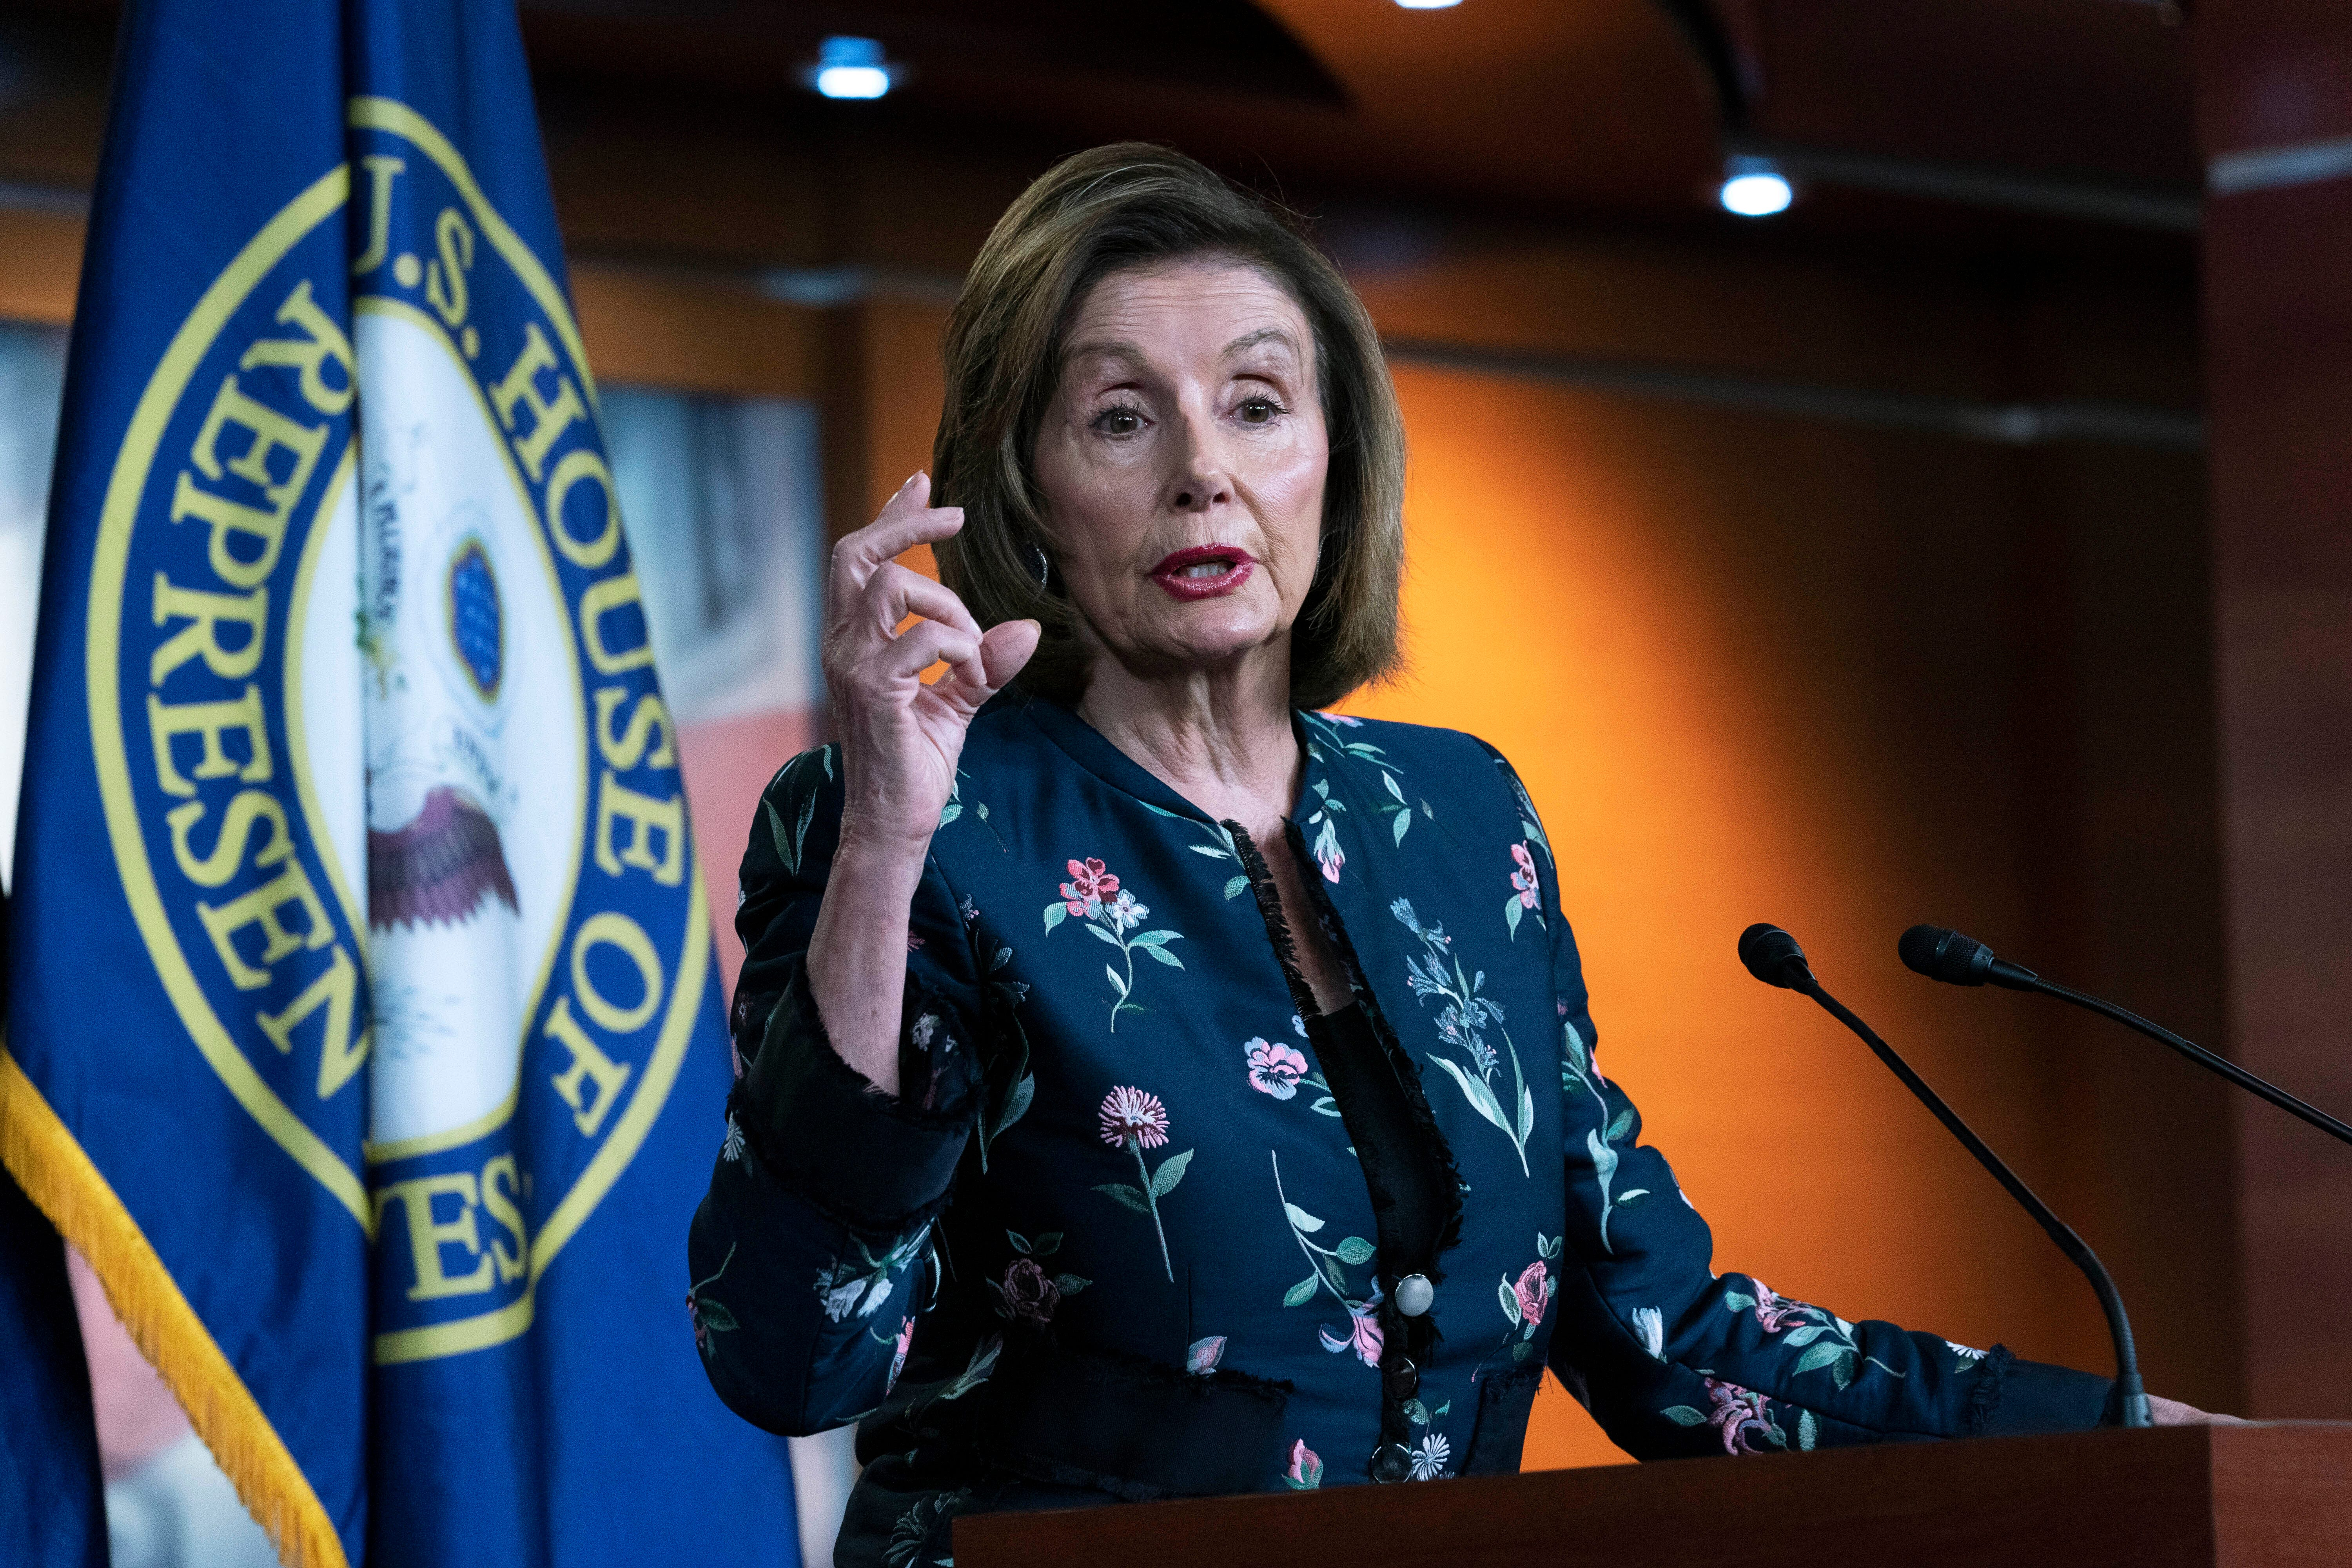 House Speaker Nancy Pelosi, D-Calif., speaks to reporters during a news conference at the Capitol in Washington, D.C., on July 22, 2021. Pelosi discussed her reasons for rejecting two Republicans chosen by House GOP leader Kevin McCarthy to be on the committee investigating the Jan. 6 Capitol insurrection.